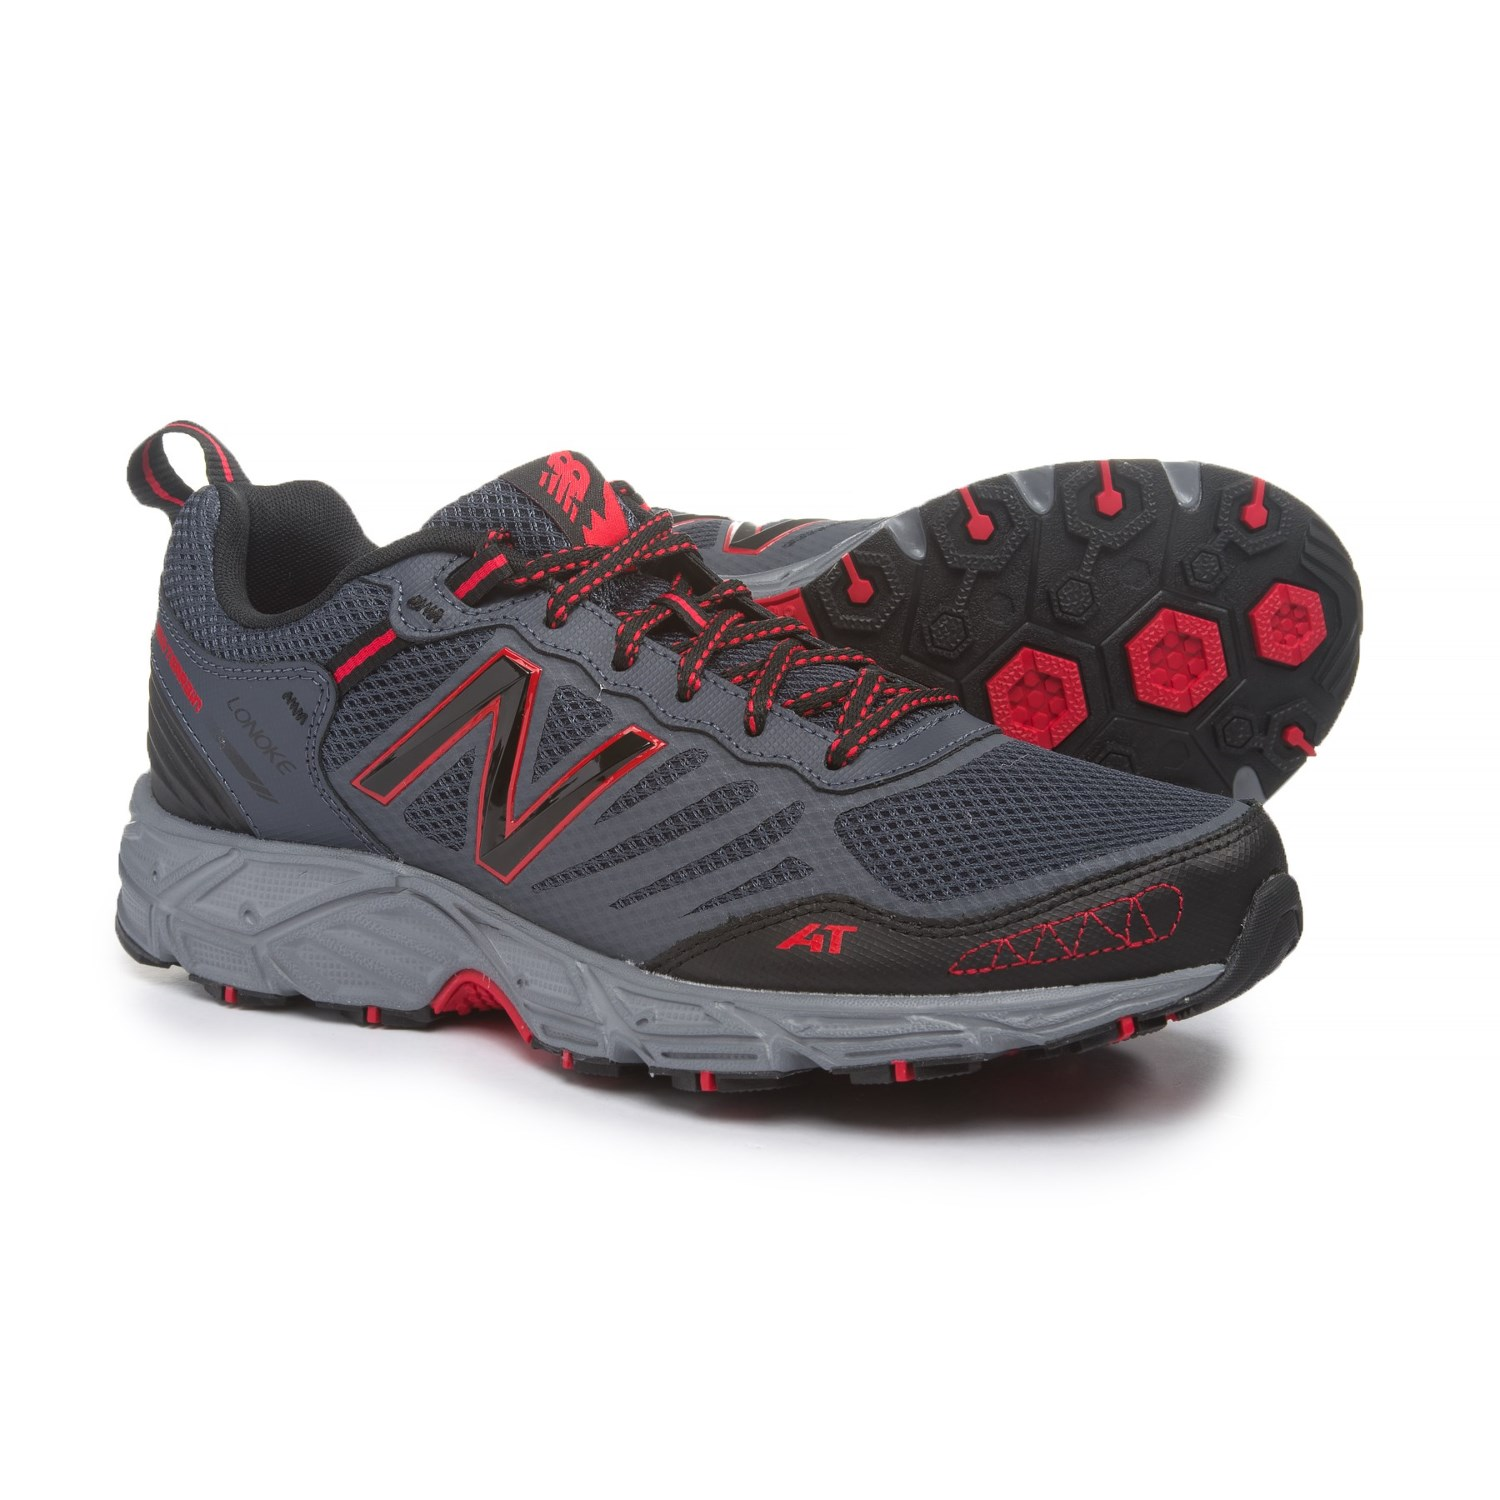 New Balance Womens  Clear Vinyl Walking Hiking Trail Athletic Shoes Size 11